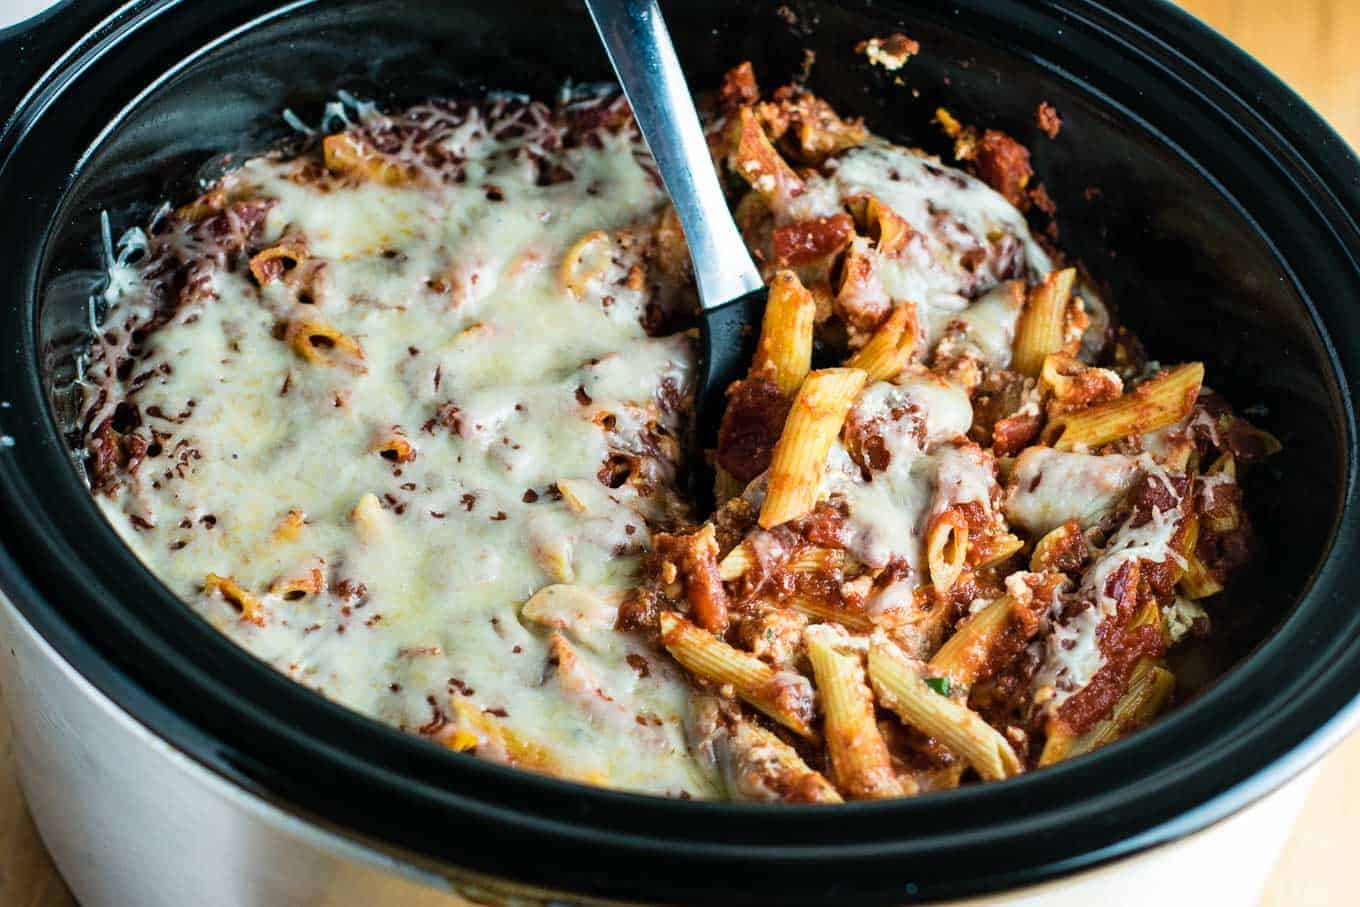 Crock pot baked ziti recipe build your bite super simple and delicious dinner with barely any cooking slow cooker baked ziti forumfinder Choice Image